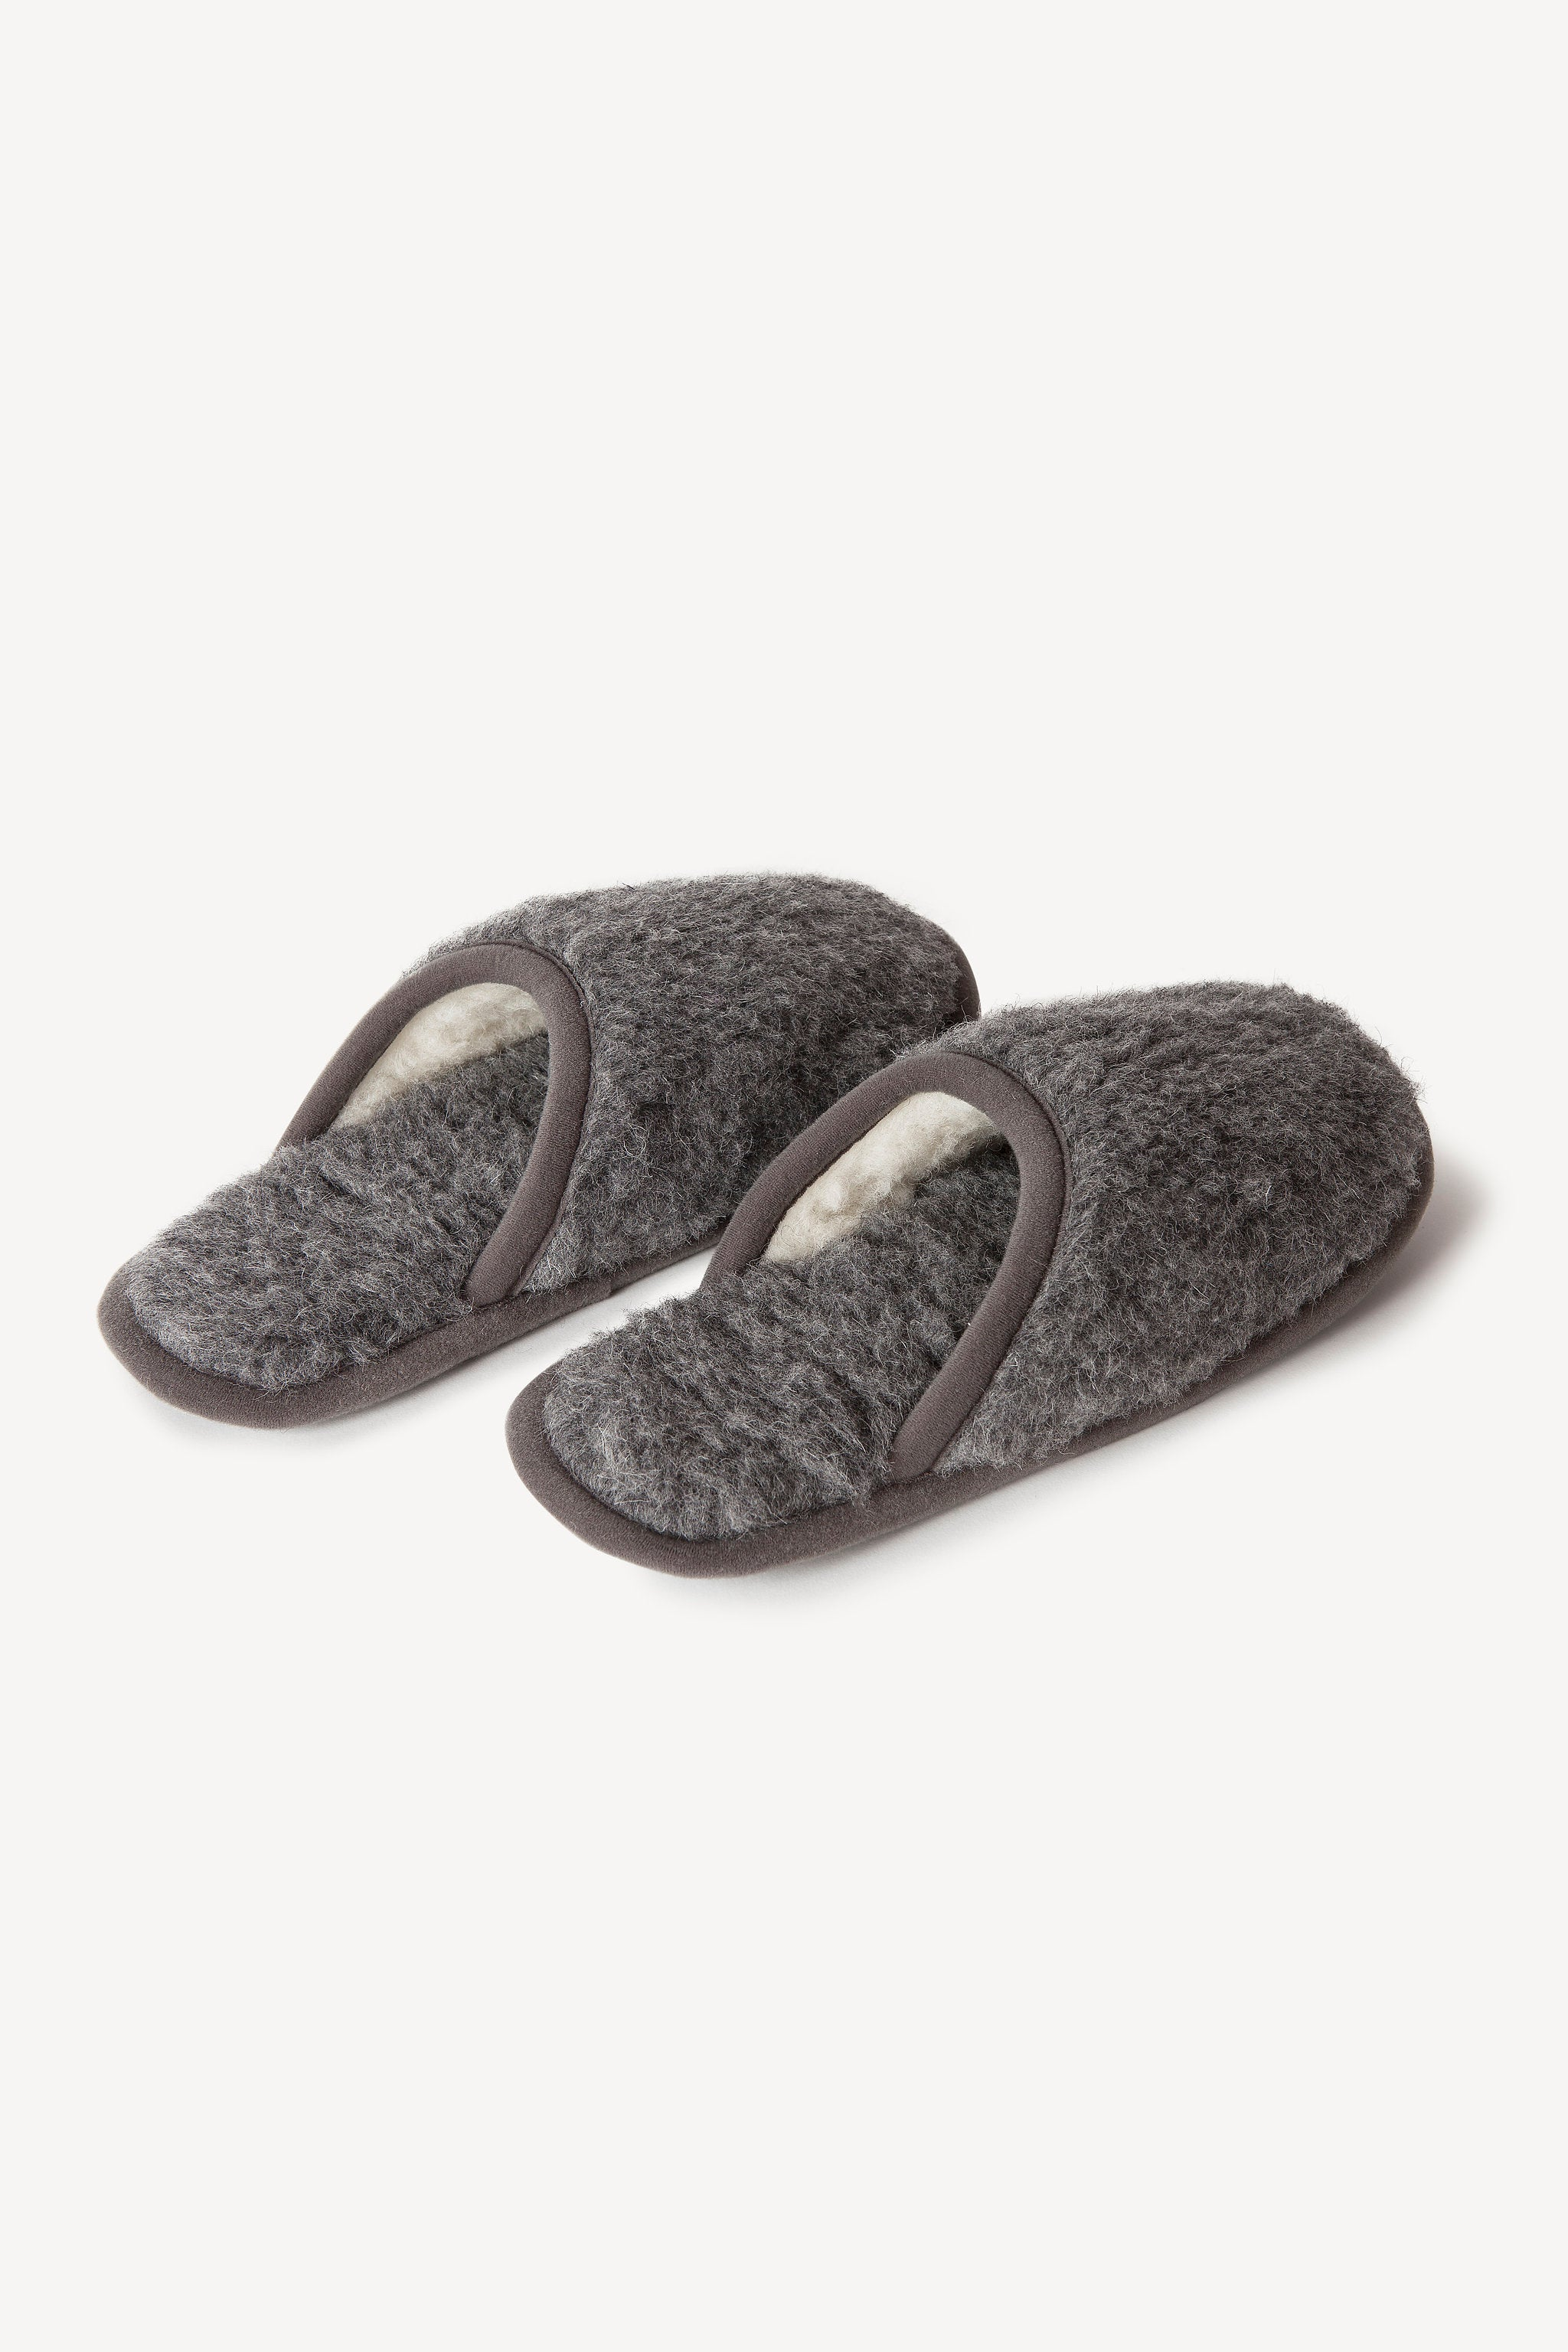 Hygge House Slippers   Gray